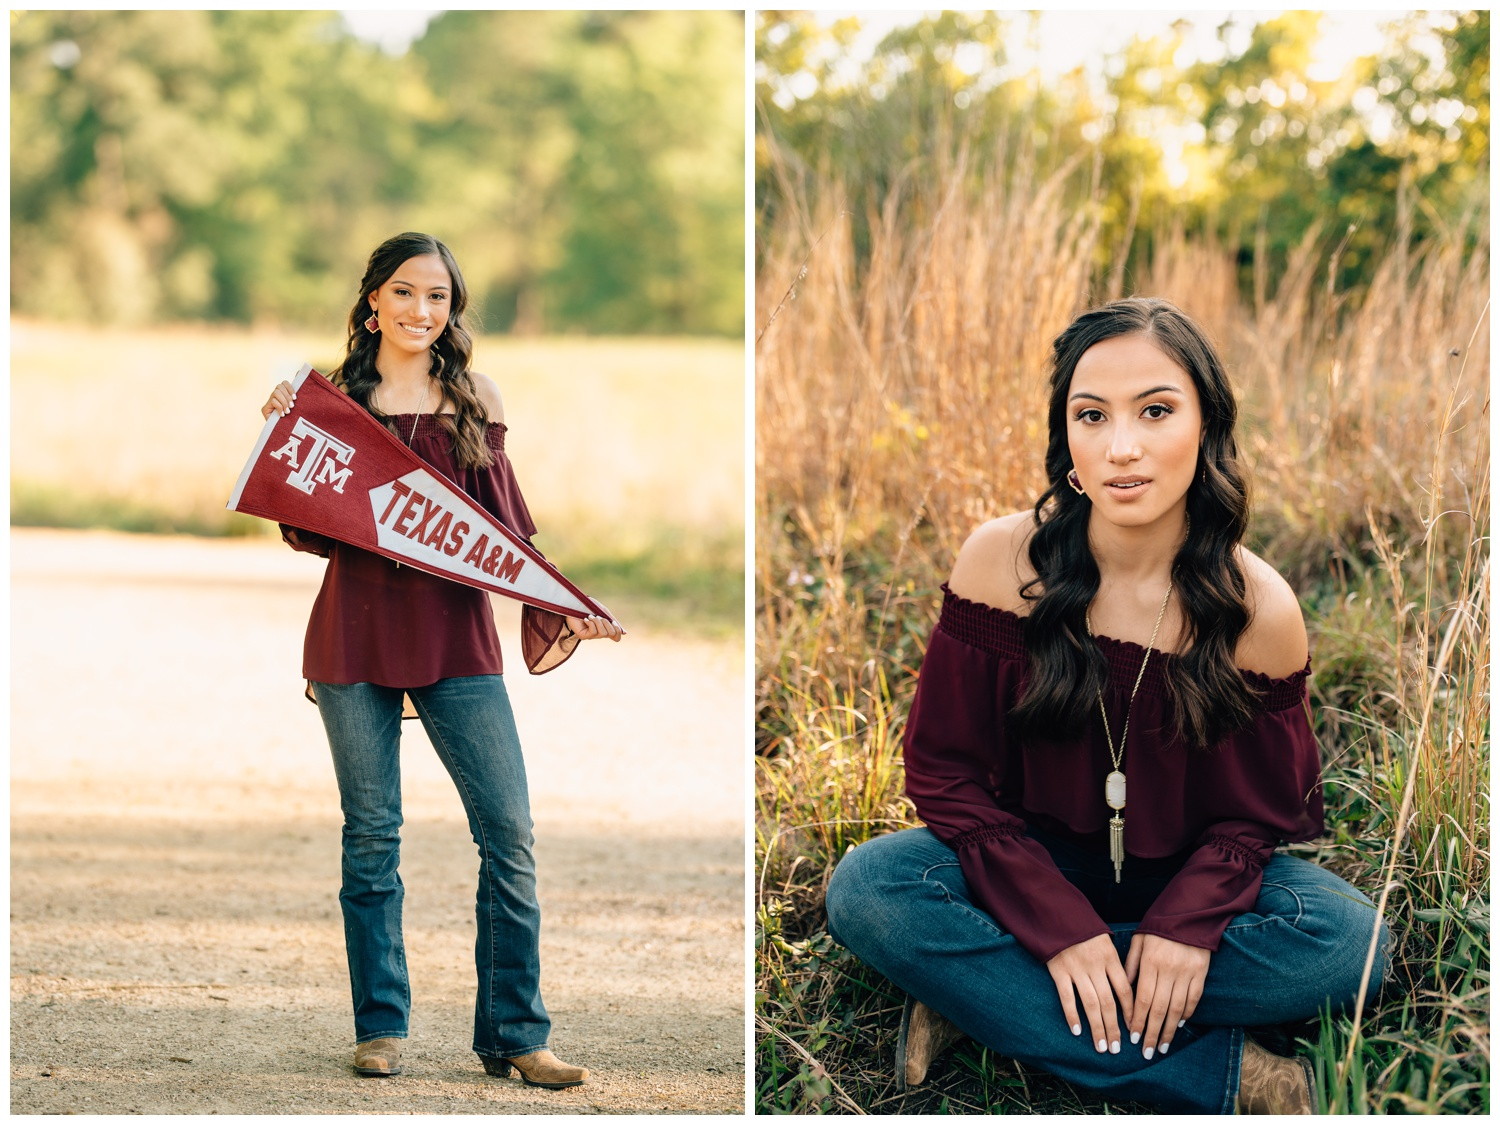 senior girl wearing maroon and holding an Aggie banner